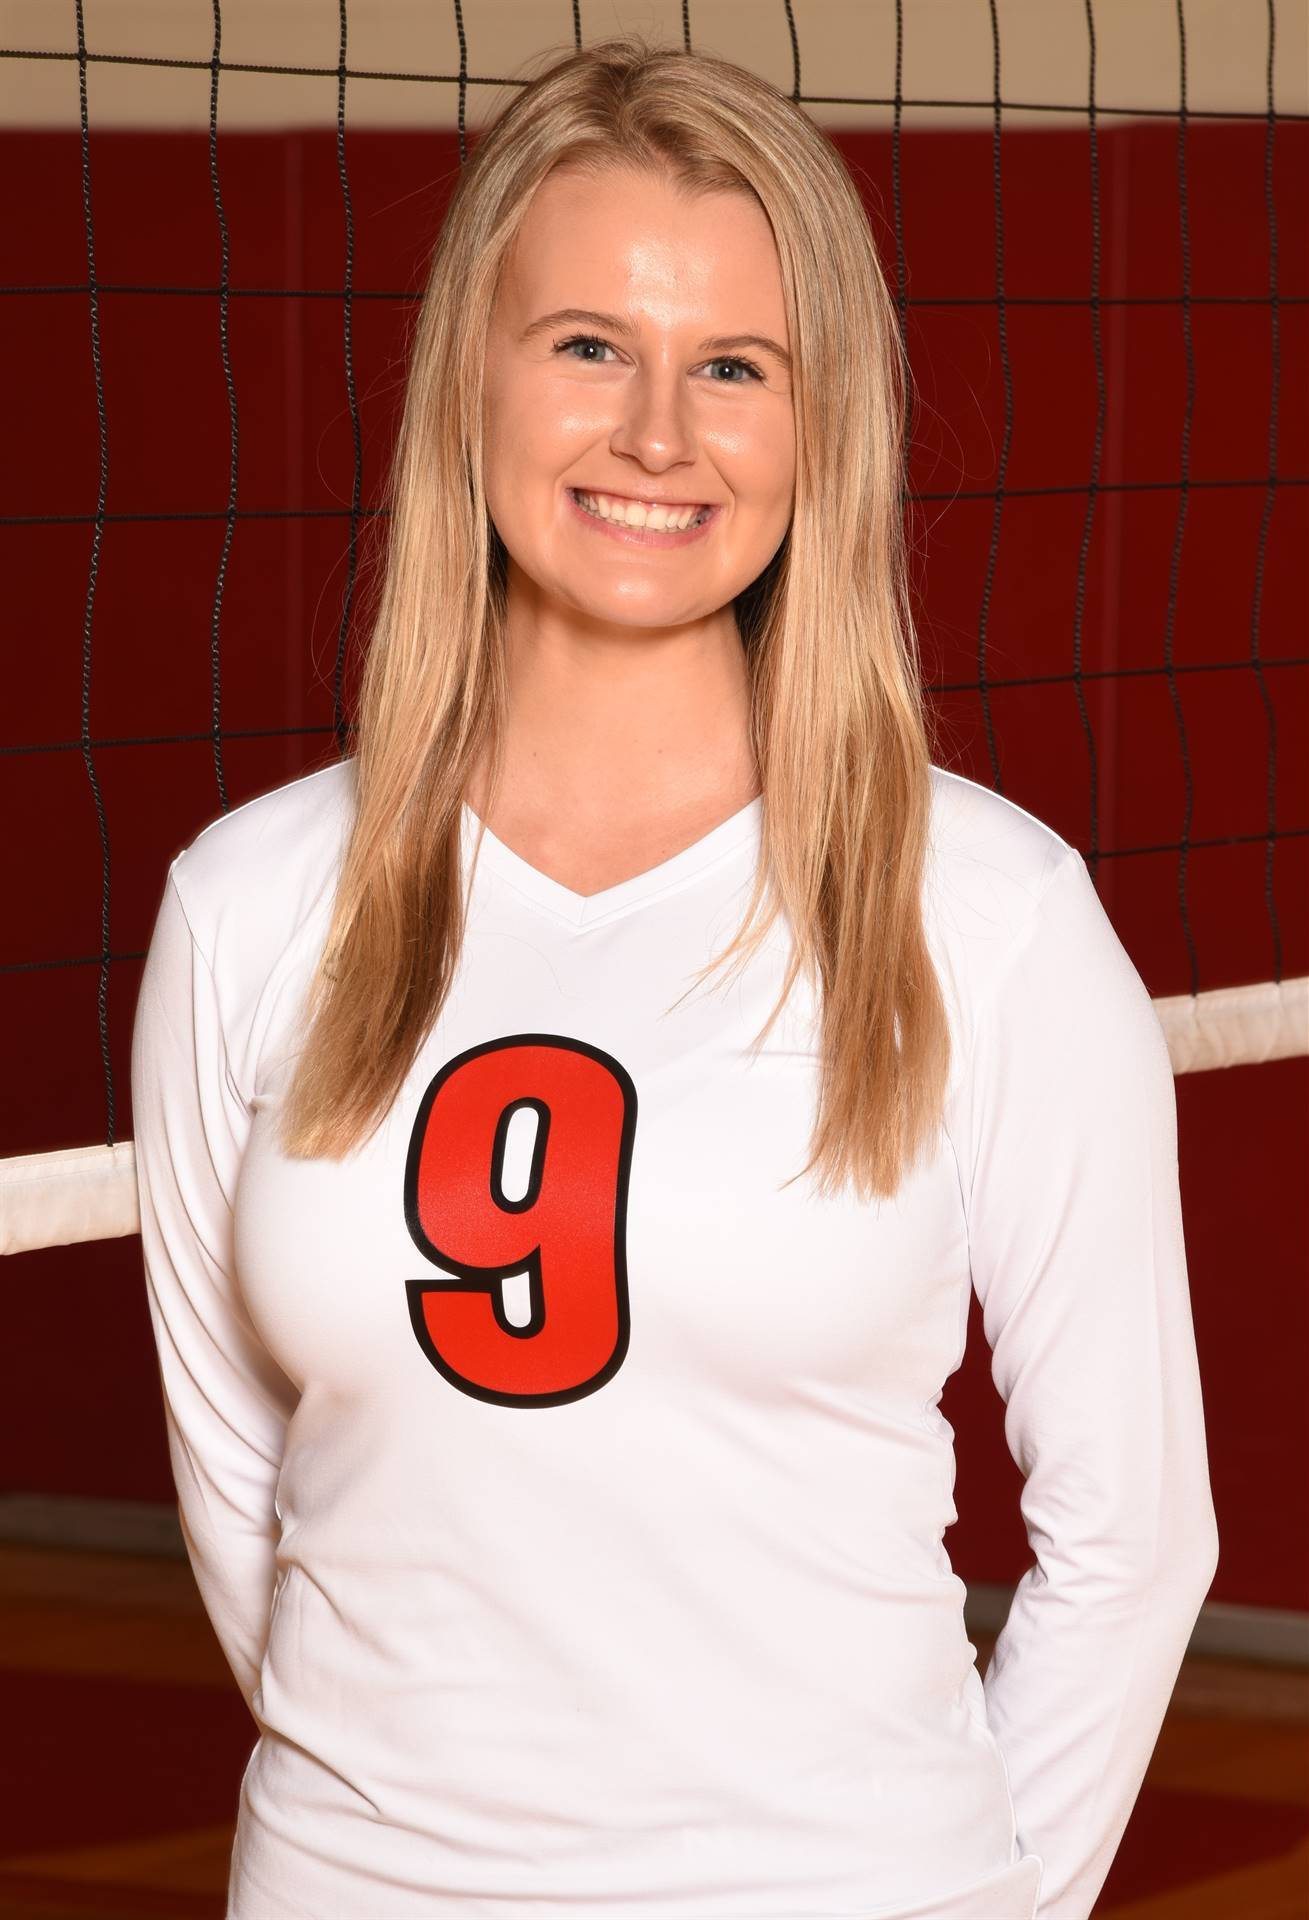 Senior Volleyball Picture - Victoria Green